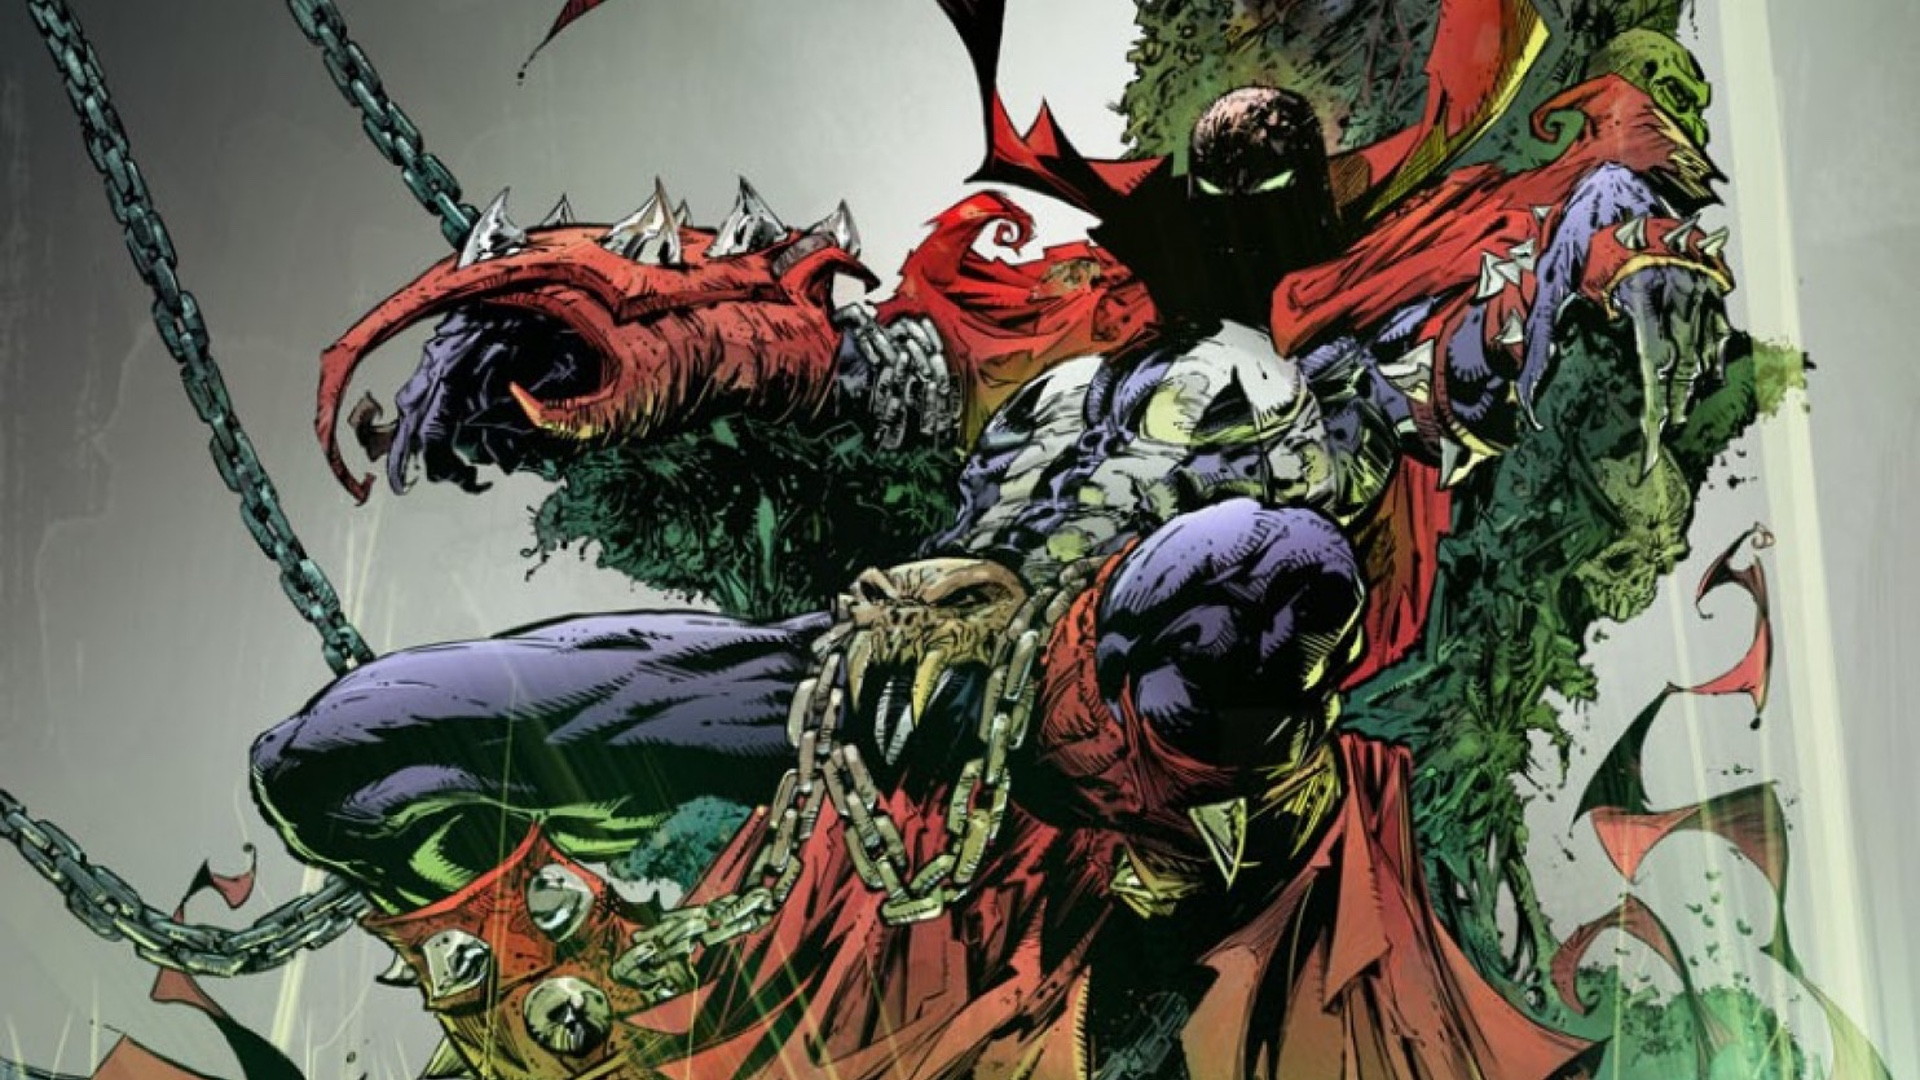 Spawn slouches on a grotesque throne